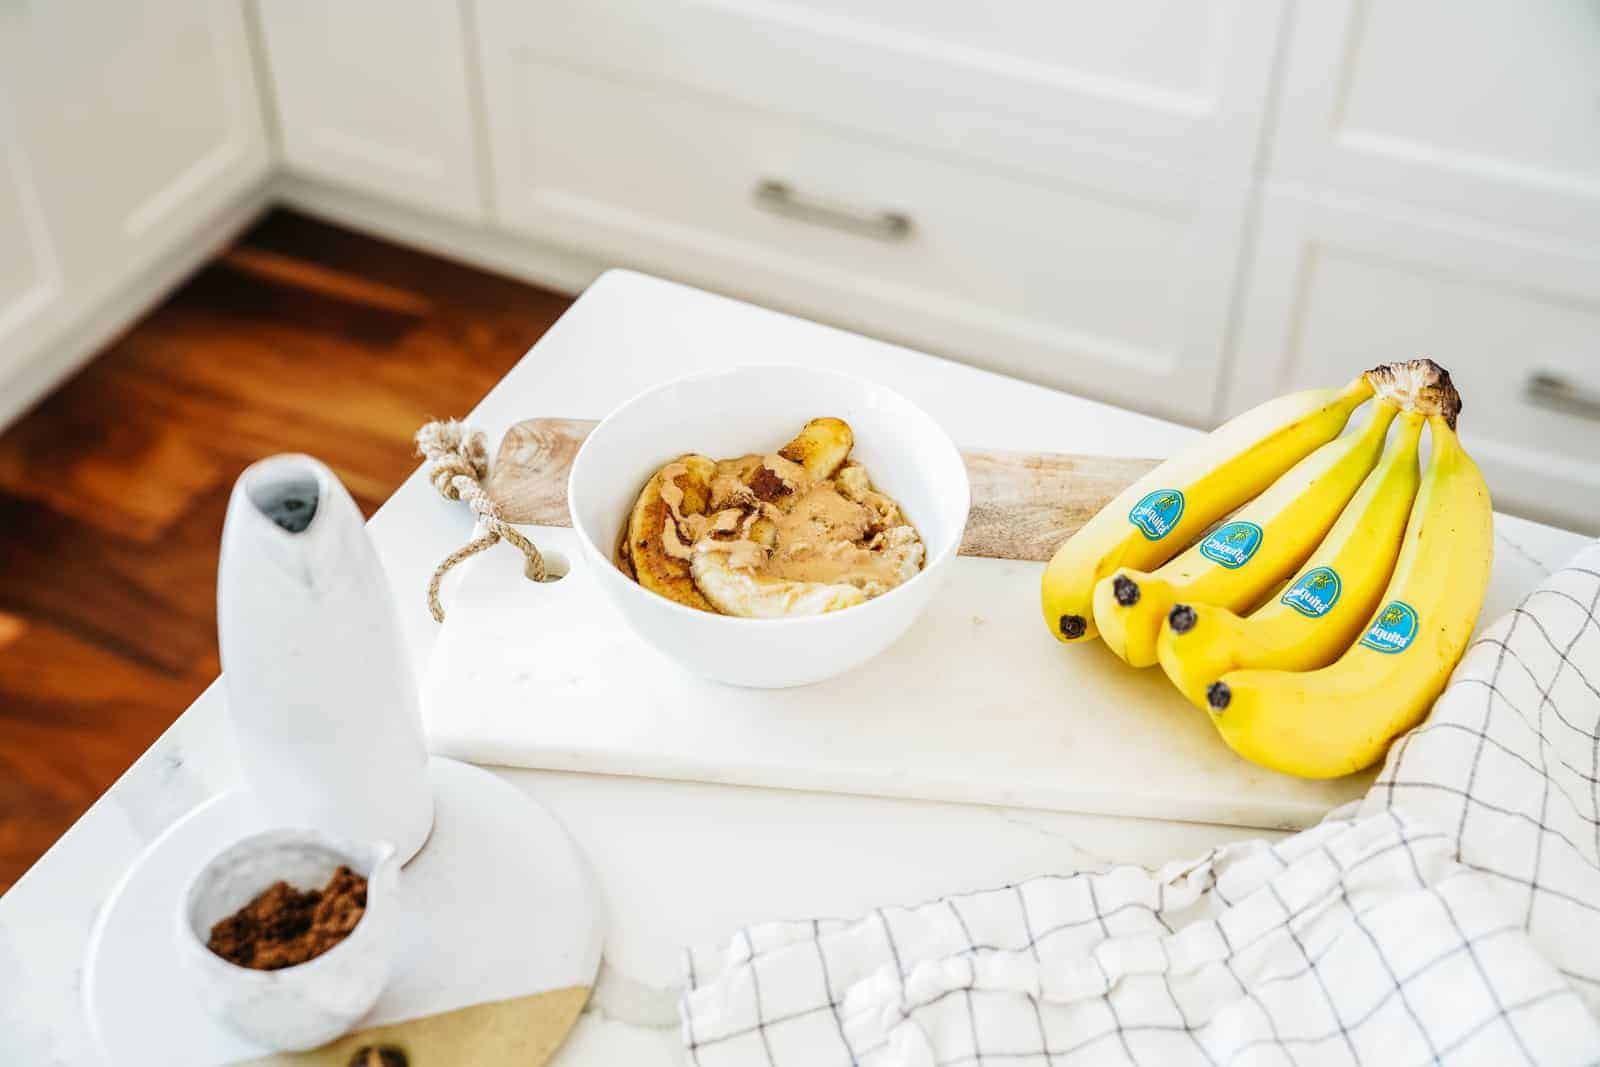 Countertop with bananas and bowl of fried banana recipe on top of oatmeal.